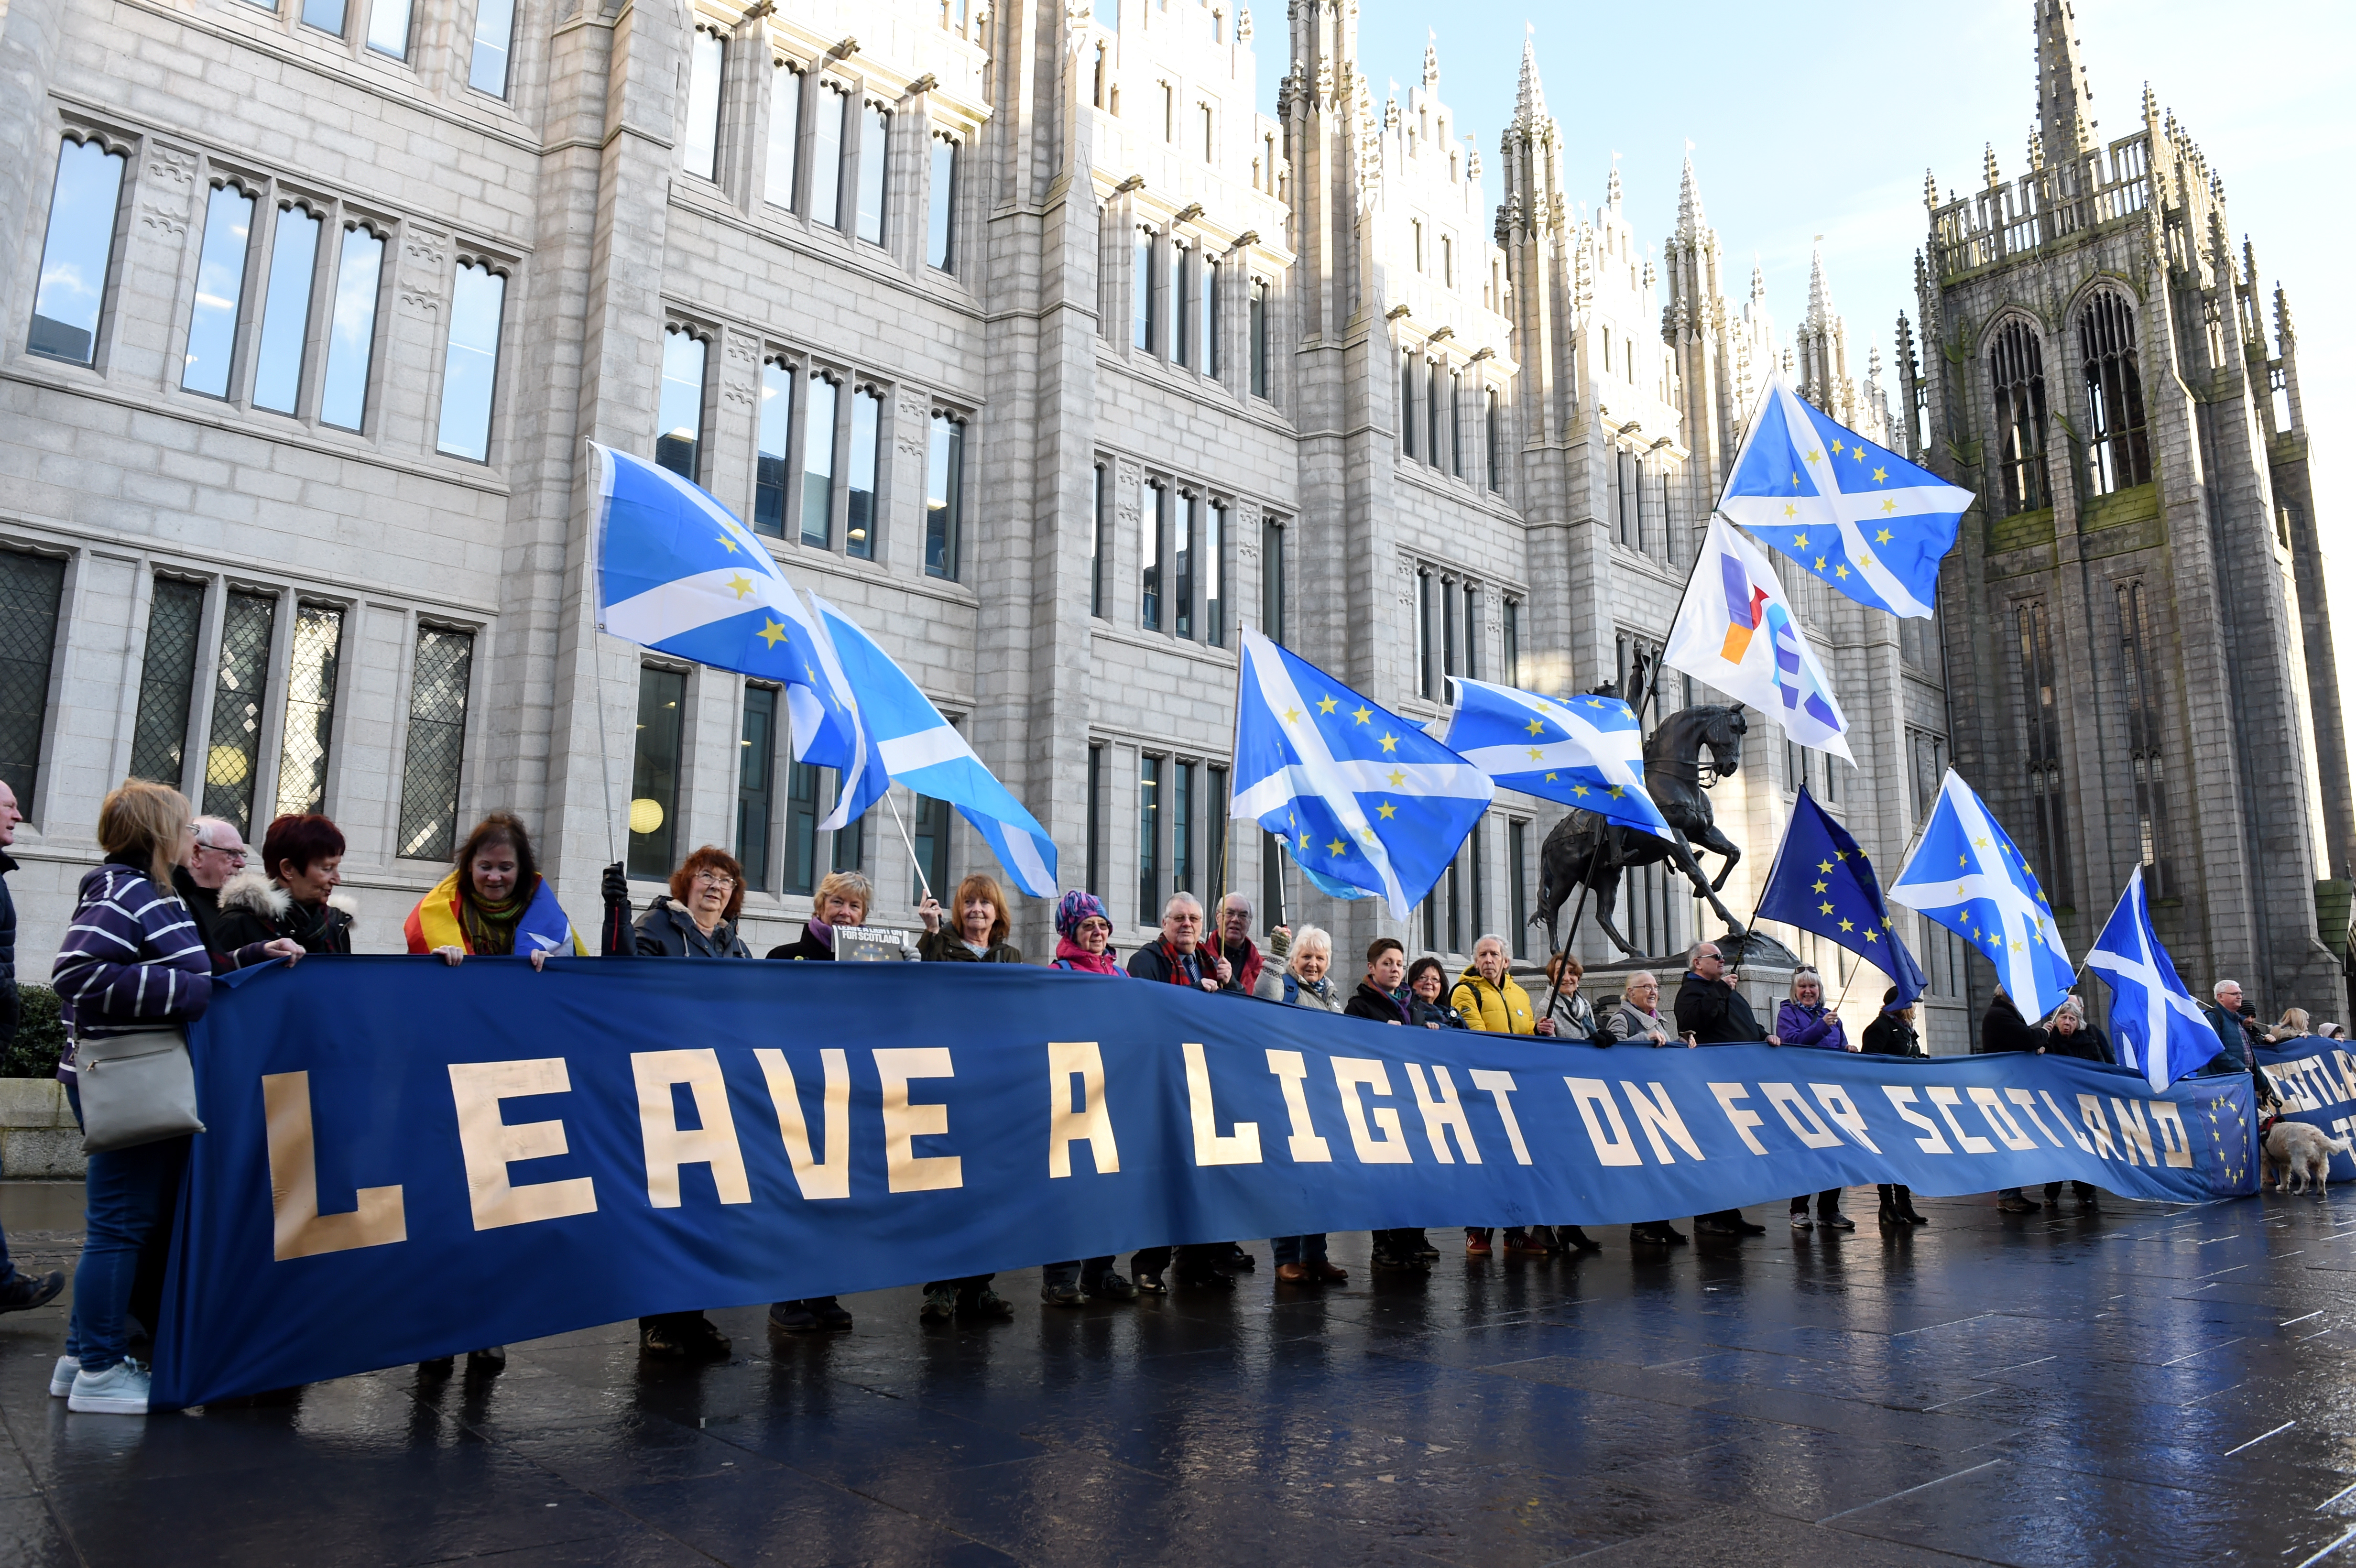 ProtestErs gathered outside Marischal College, Aberdeen, on Brexit Day.